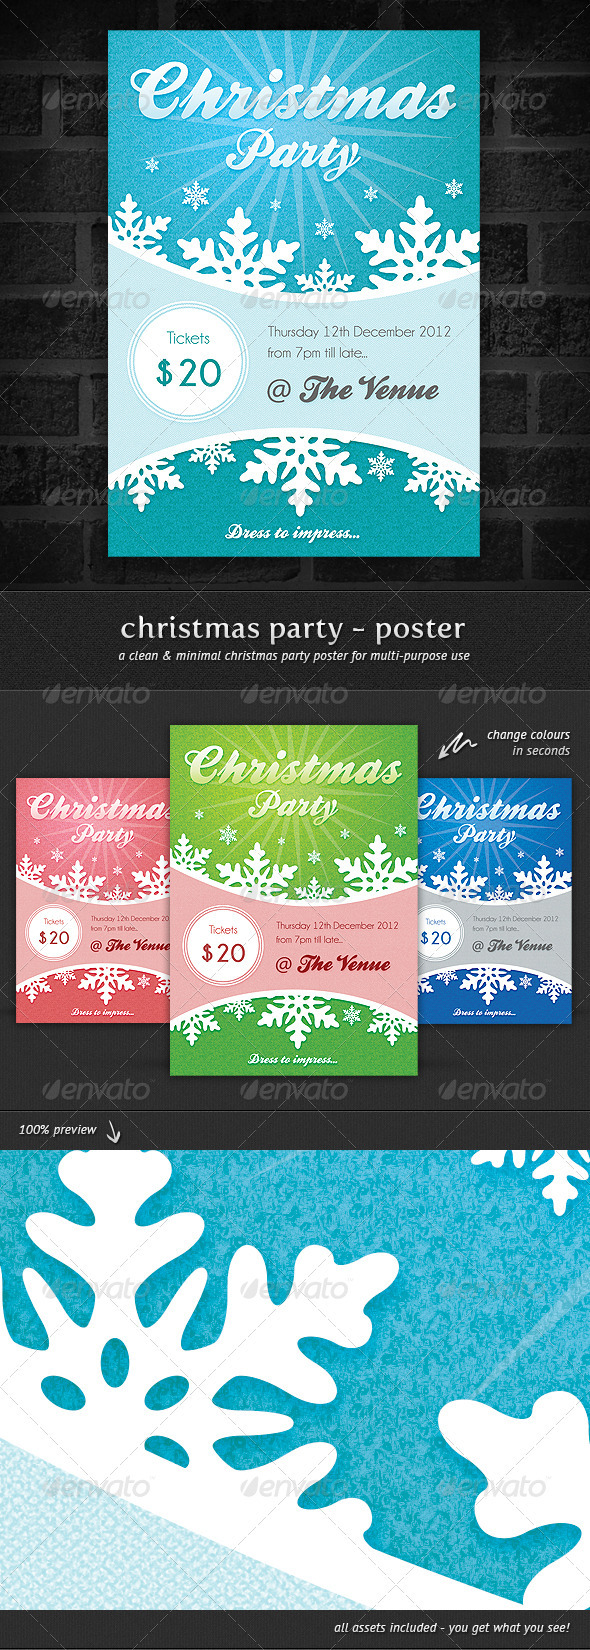 GraphicRiver Christmas Party Event Poster 3310475